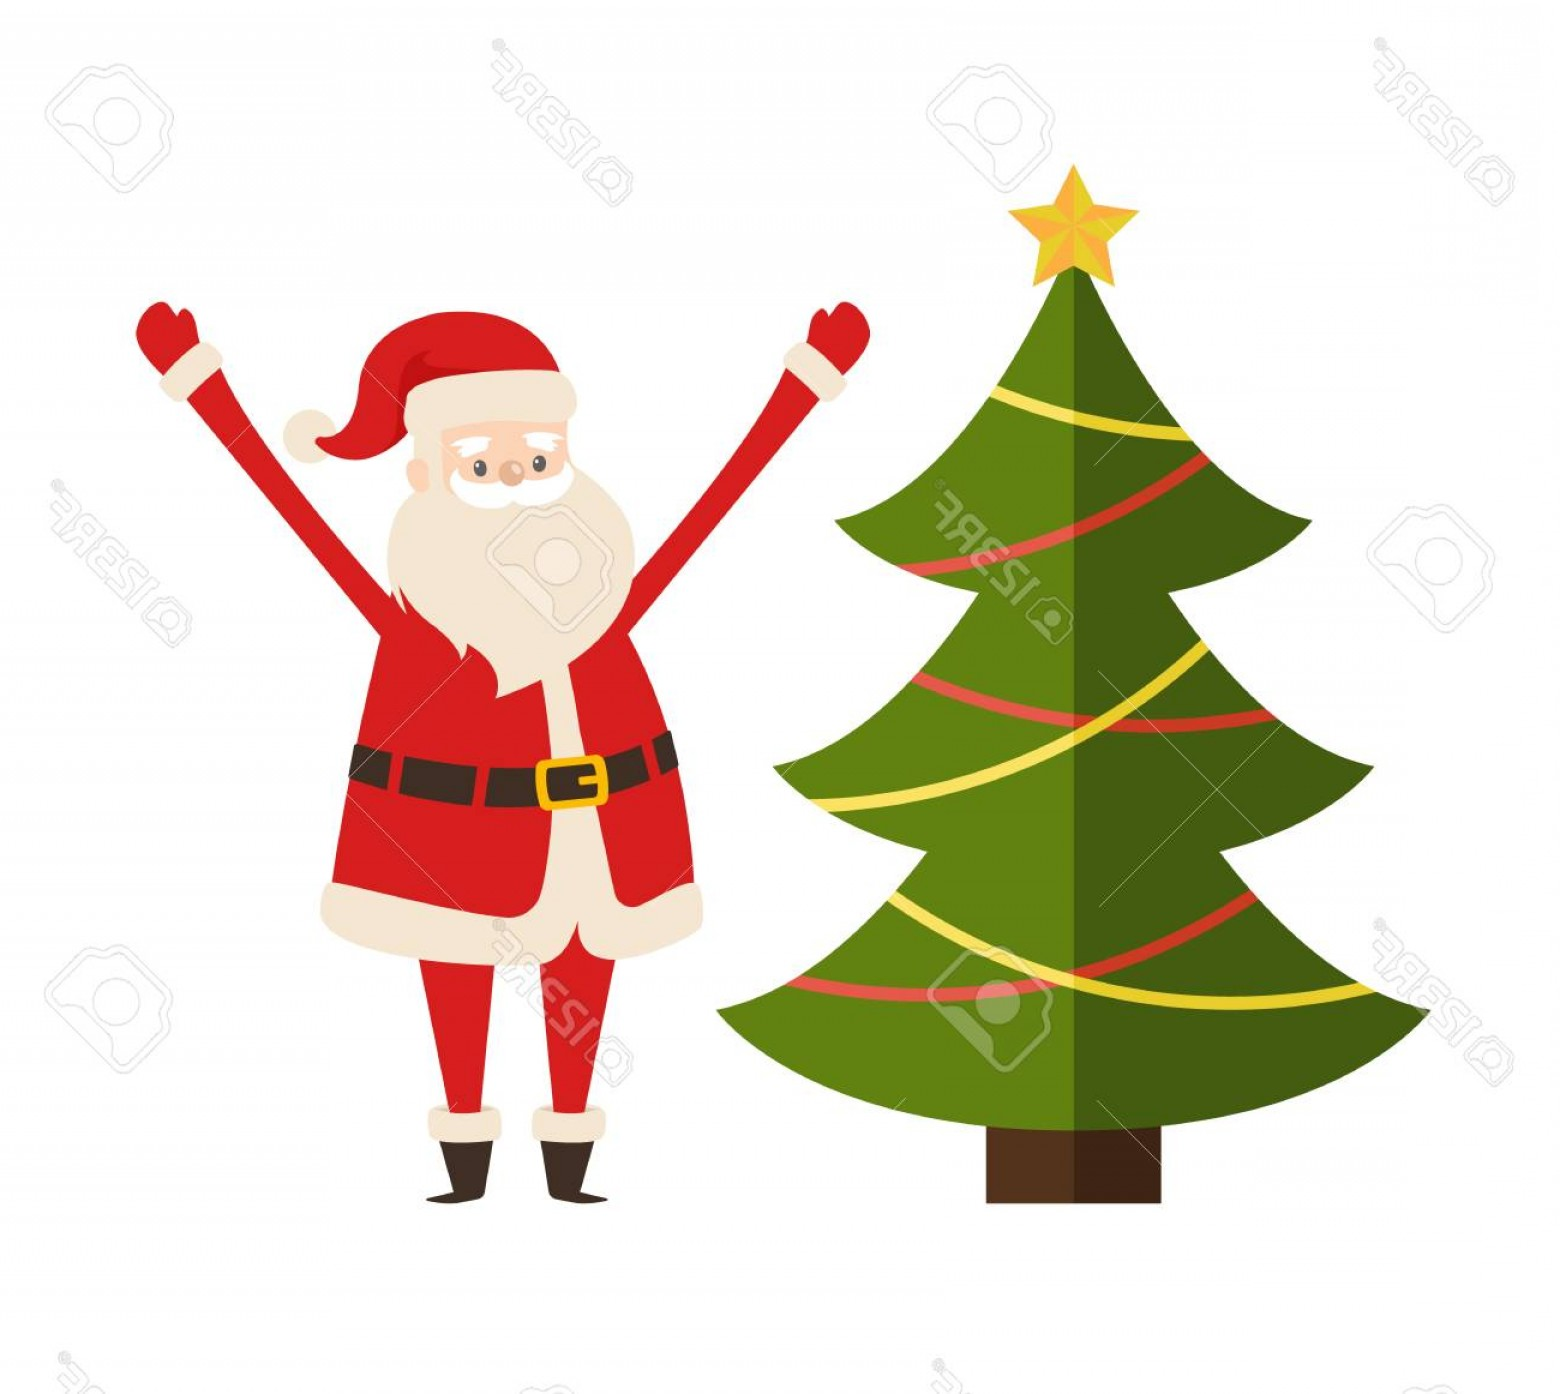 Santa Claus Vector Illustration: Photostock Vector New Year Tree And Santa Claus Vector Illustration Poster With Decorated Spruce Fir And Saint Nichola